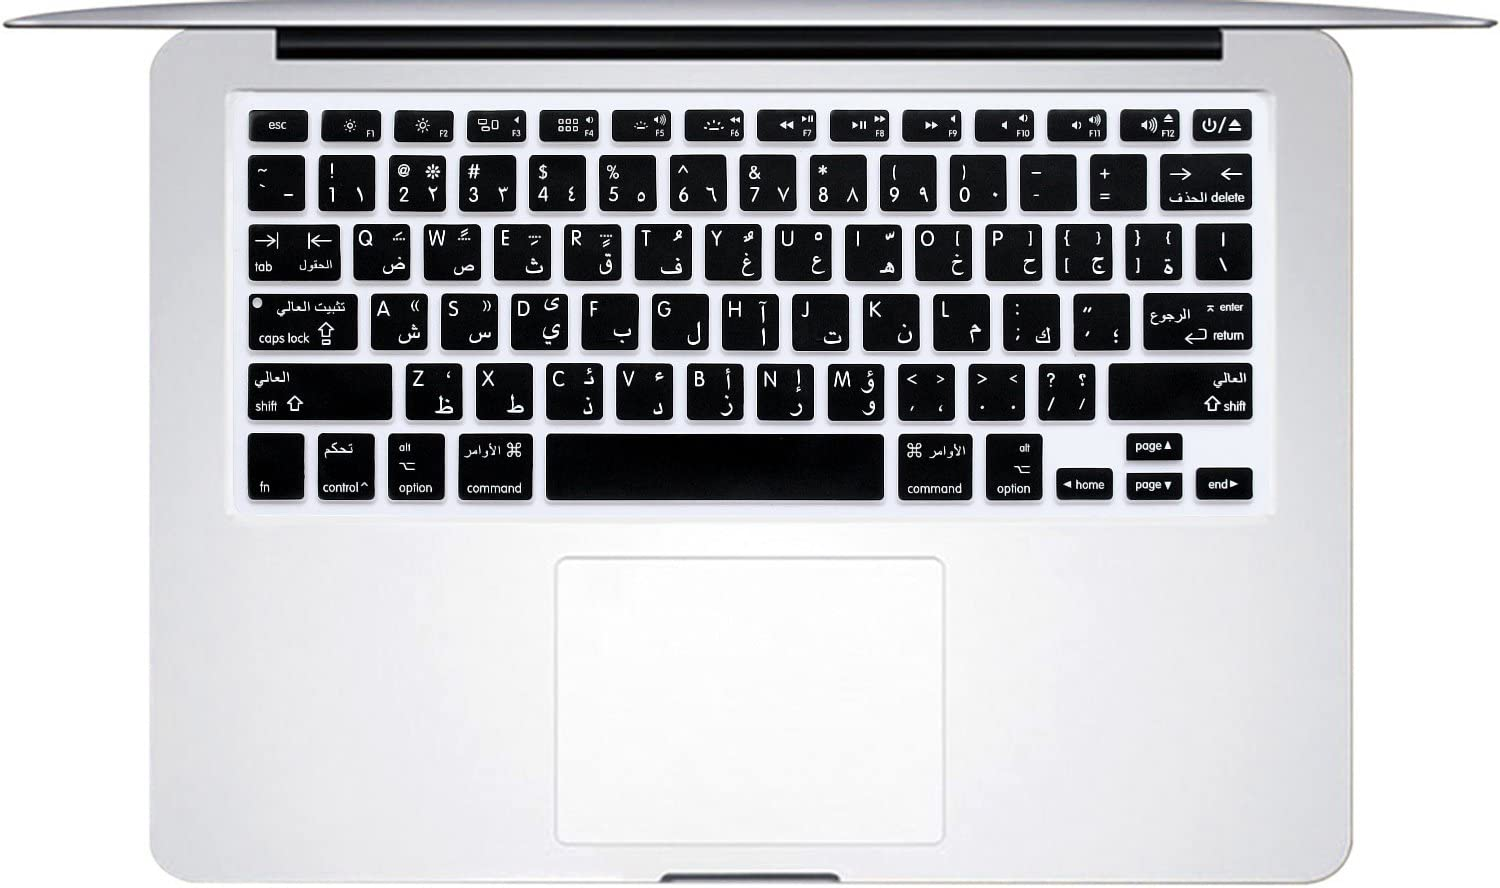 "Arabic Language Silicone Keyboard Cover Skin for MacBook Air 13"" Macbook Pro with / without Retina Display 13""15"" 17"" MC184LL/B, NOT COMPATIBLE WITH NEW MacBook Air 13"" A1932 (Black)"